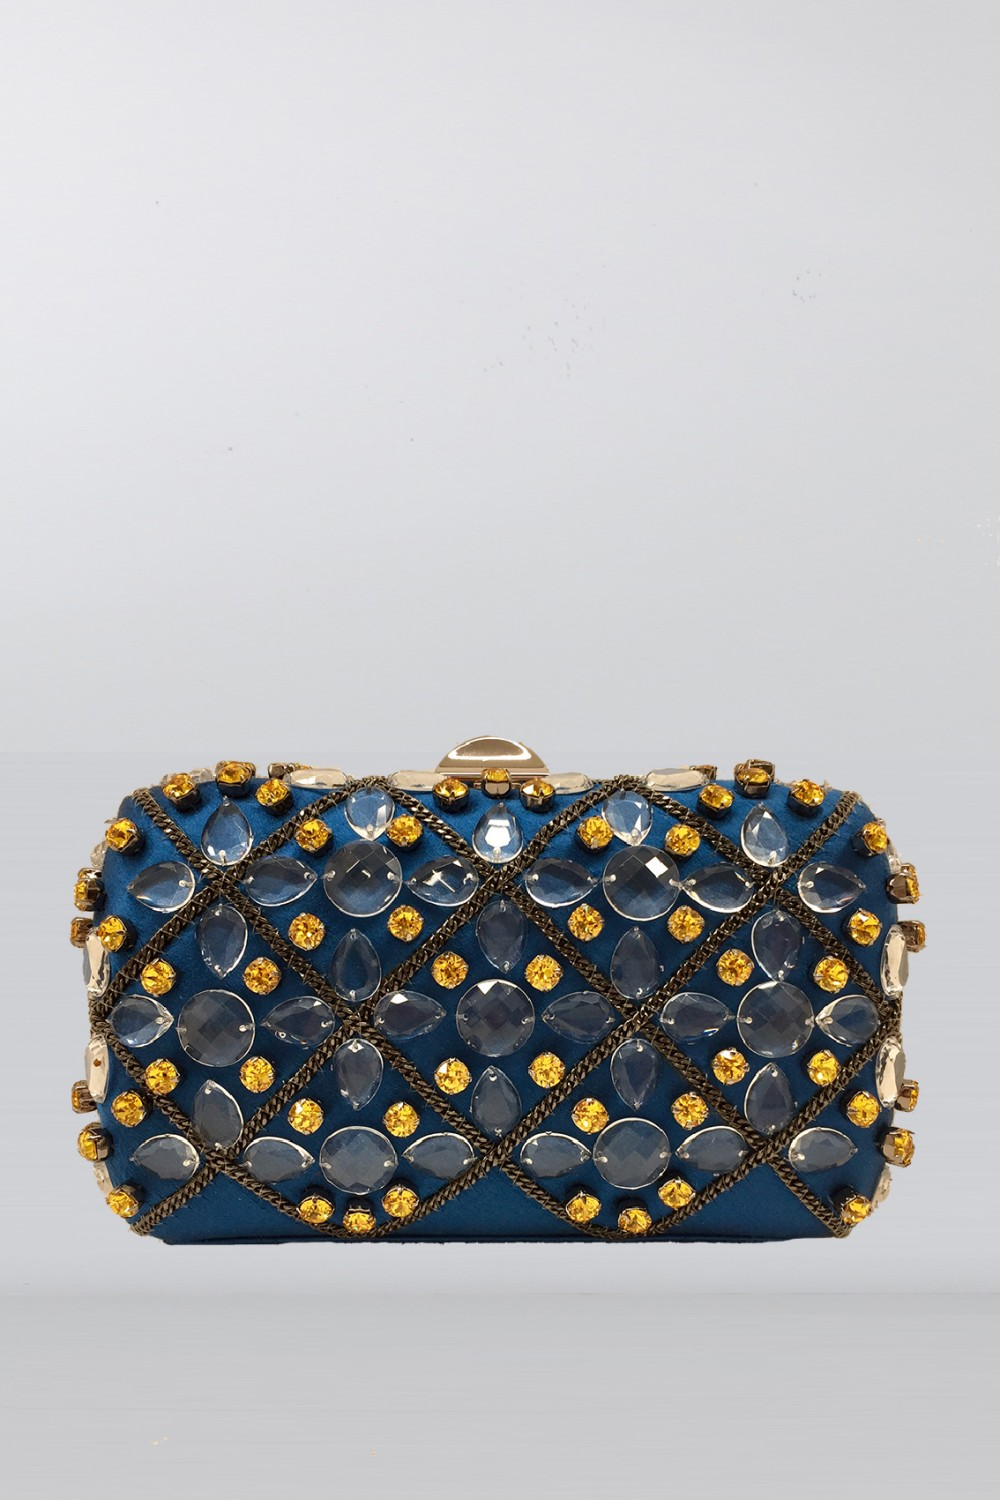 Blue silk clutch with crystals and chains